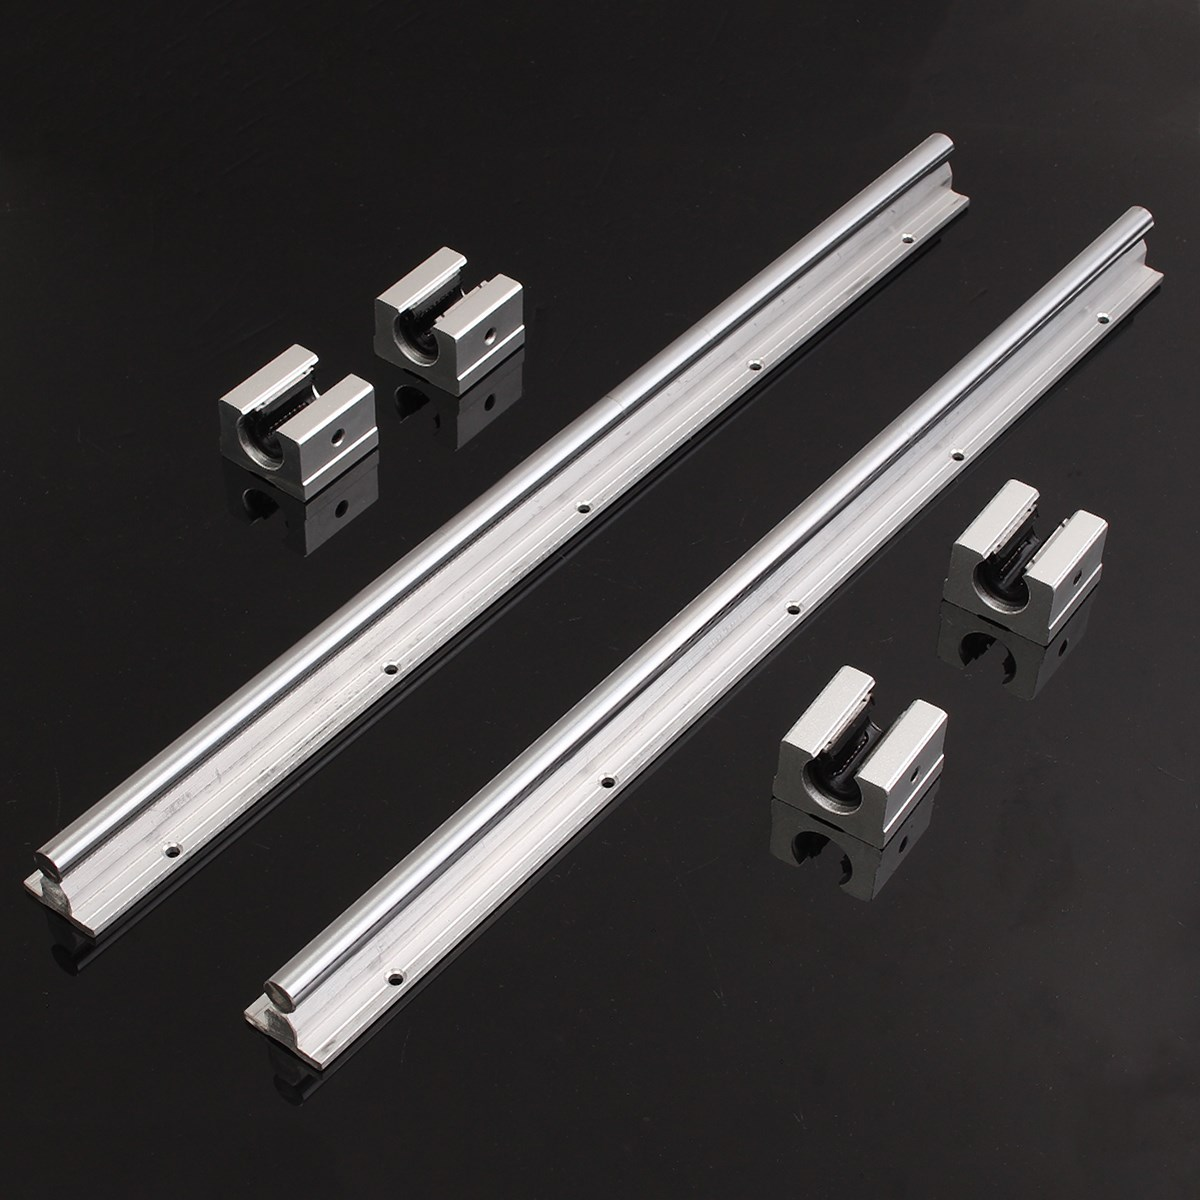 Best Price 2X SBR12 475mm Linear Rails + 4pcs/lot SBR12UU for 12mm Shaft Support Rail cnc parts High-carbon steel best price natural fructus corni extract shan zhu yu supplier 800g lot